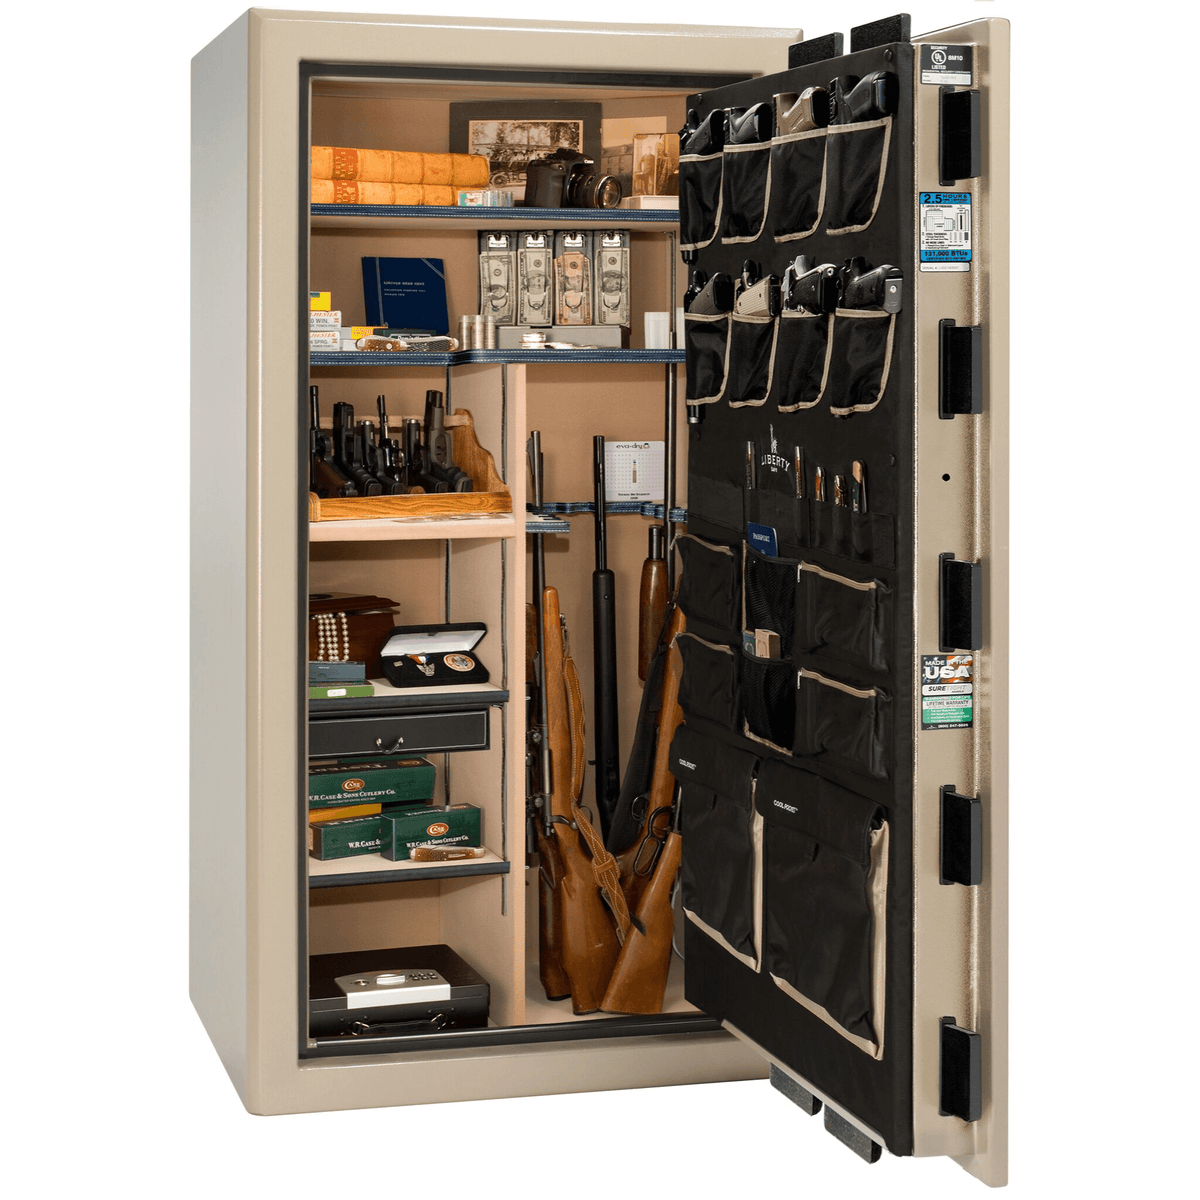 "Presidential | 40 | Level 8 Security | 150 Minute Fire Protection | Champagne | Black Electronic Lock | 65.5""(H) x 36""(W) x 32""(D)"